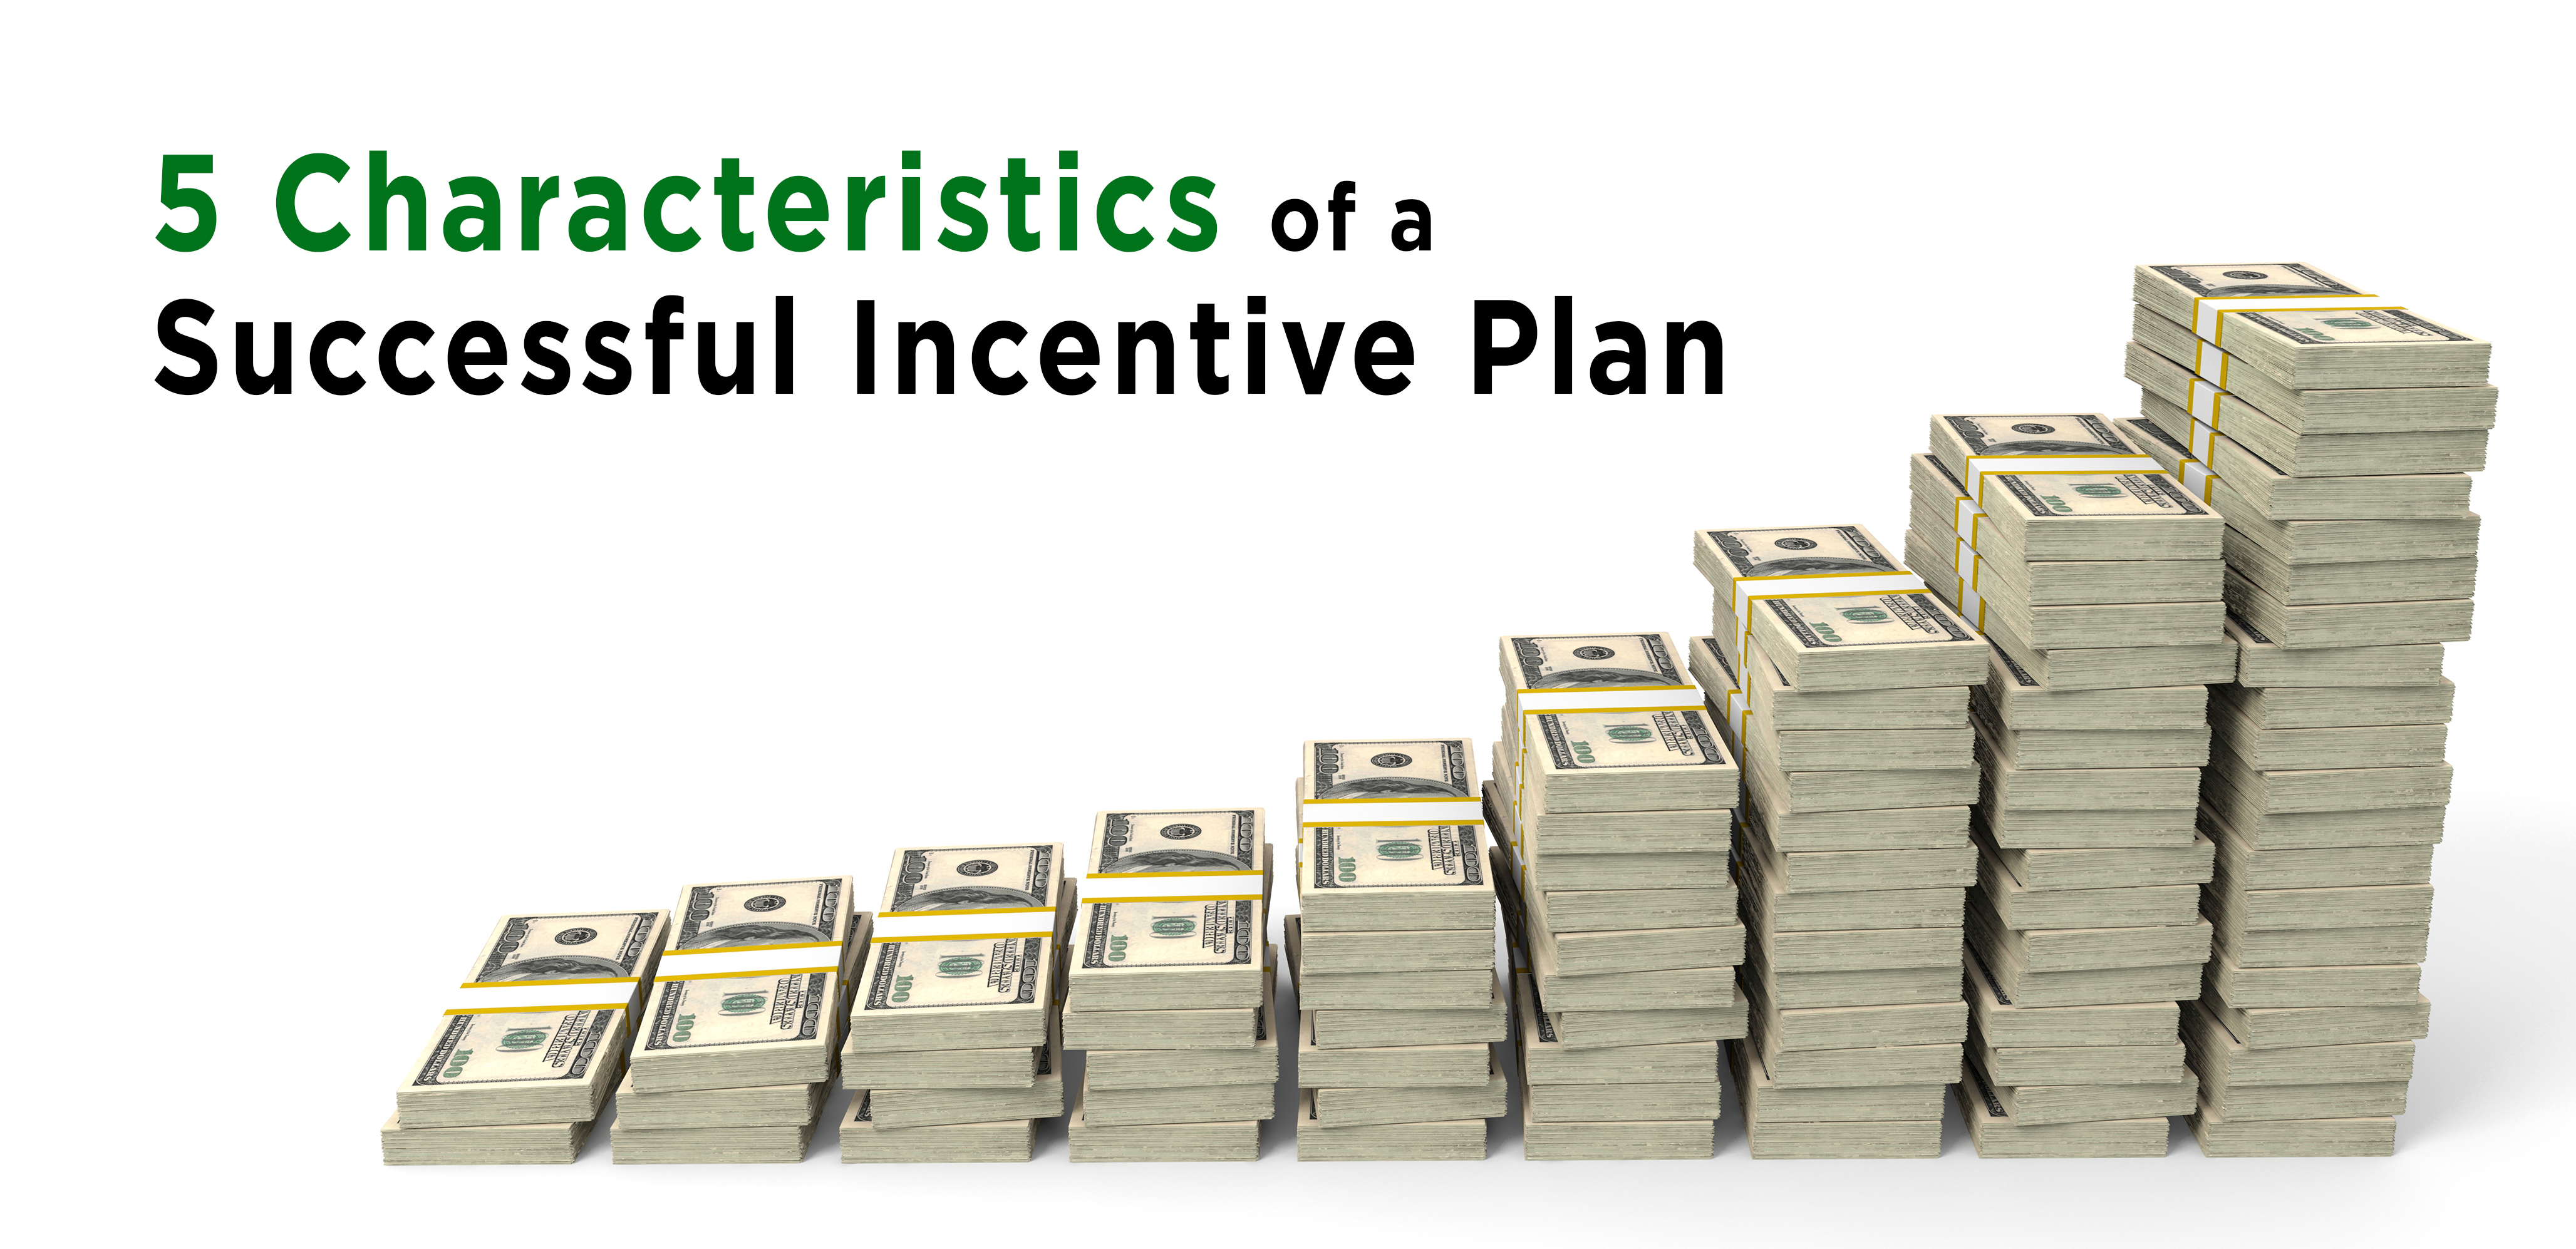 Successful Incentive Plans